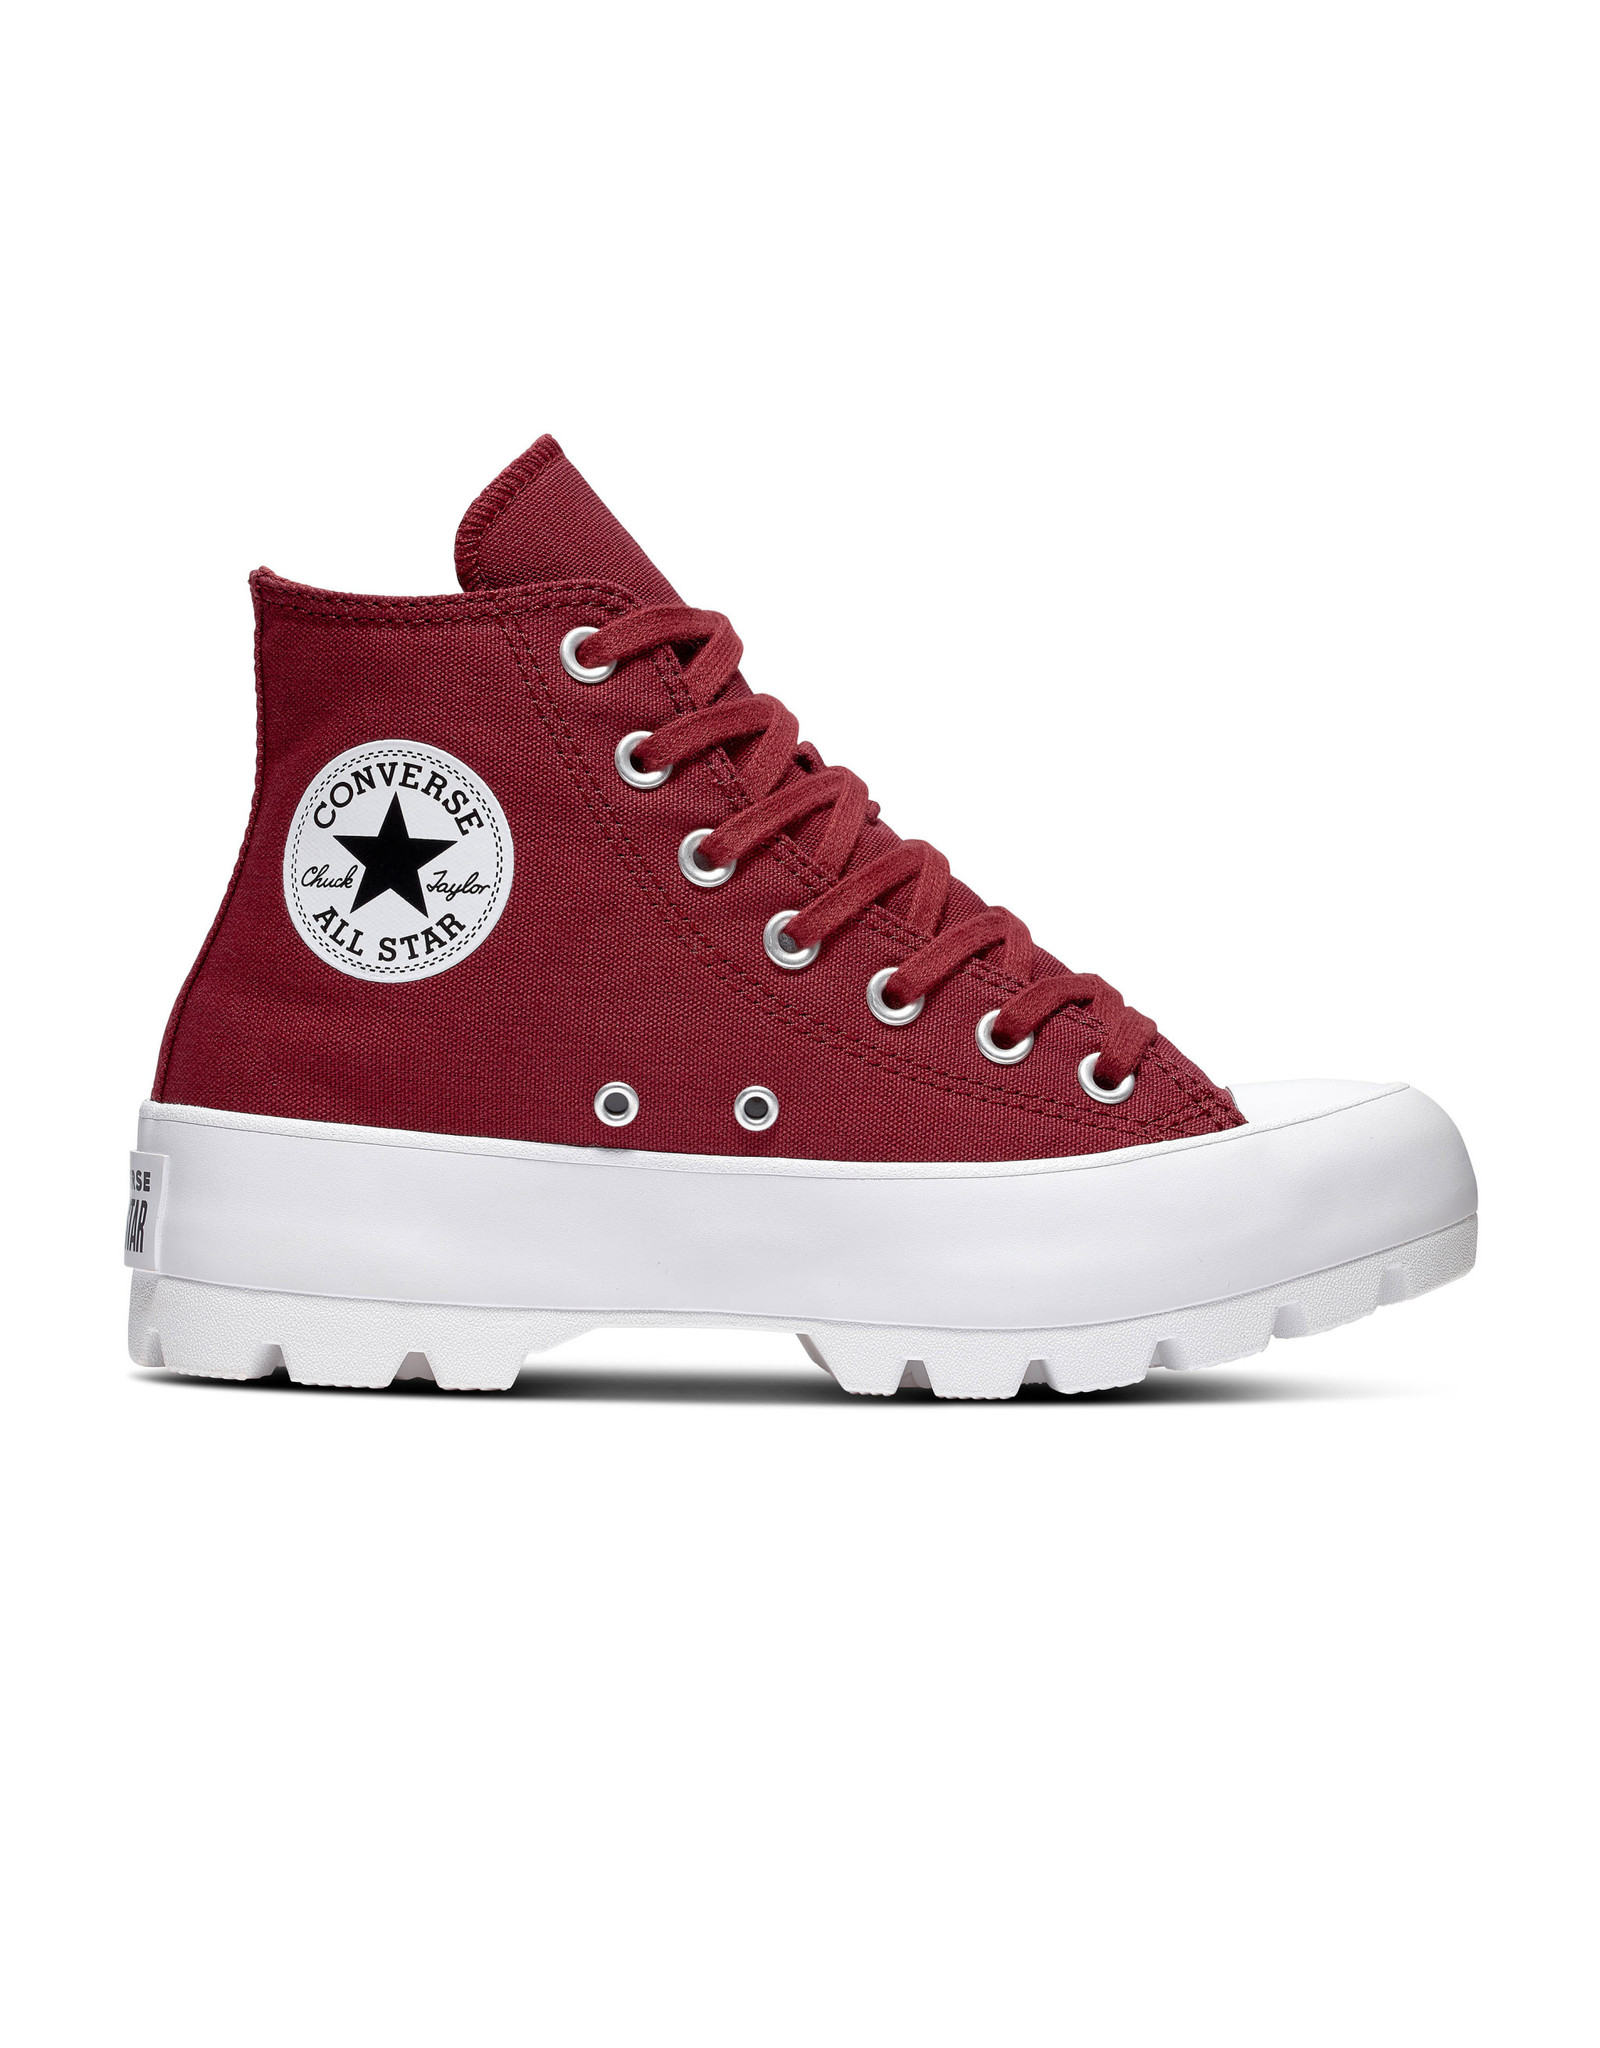 CONVERSE CHUCK TAYLOR ALL STAR LUGGED HI DARK BURGUNDY C994DAB-566284C